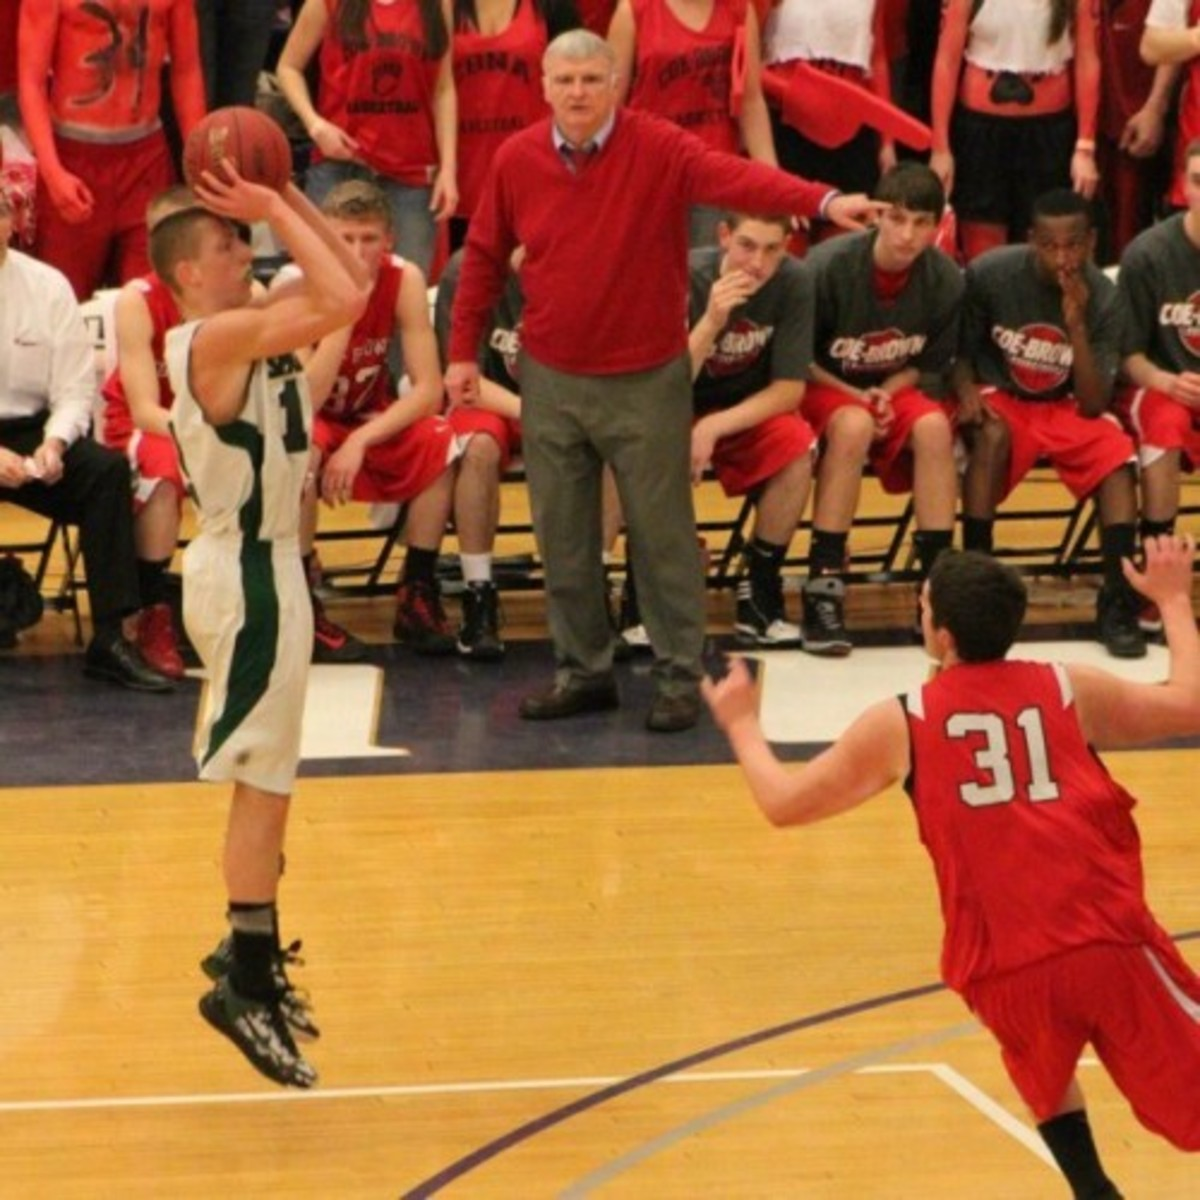 Pat Welch going for the jumper